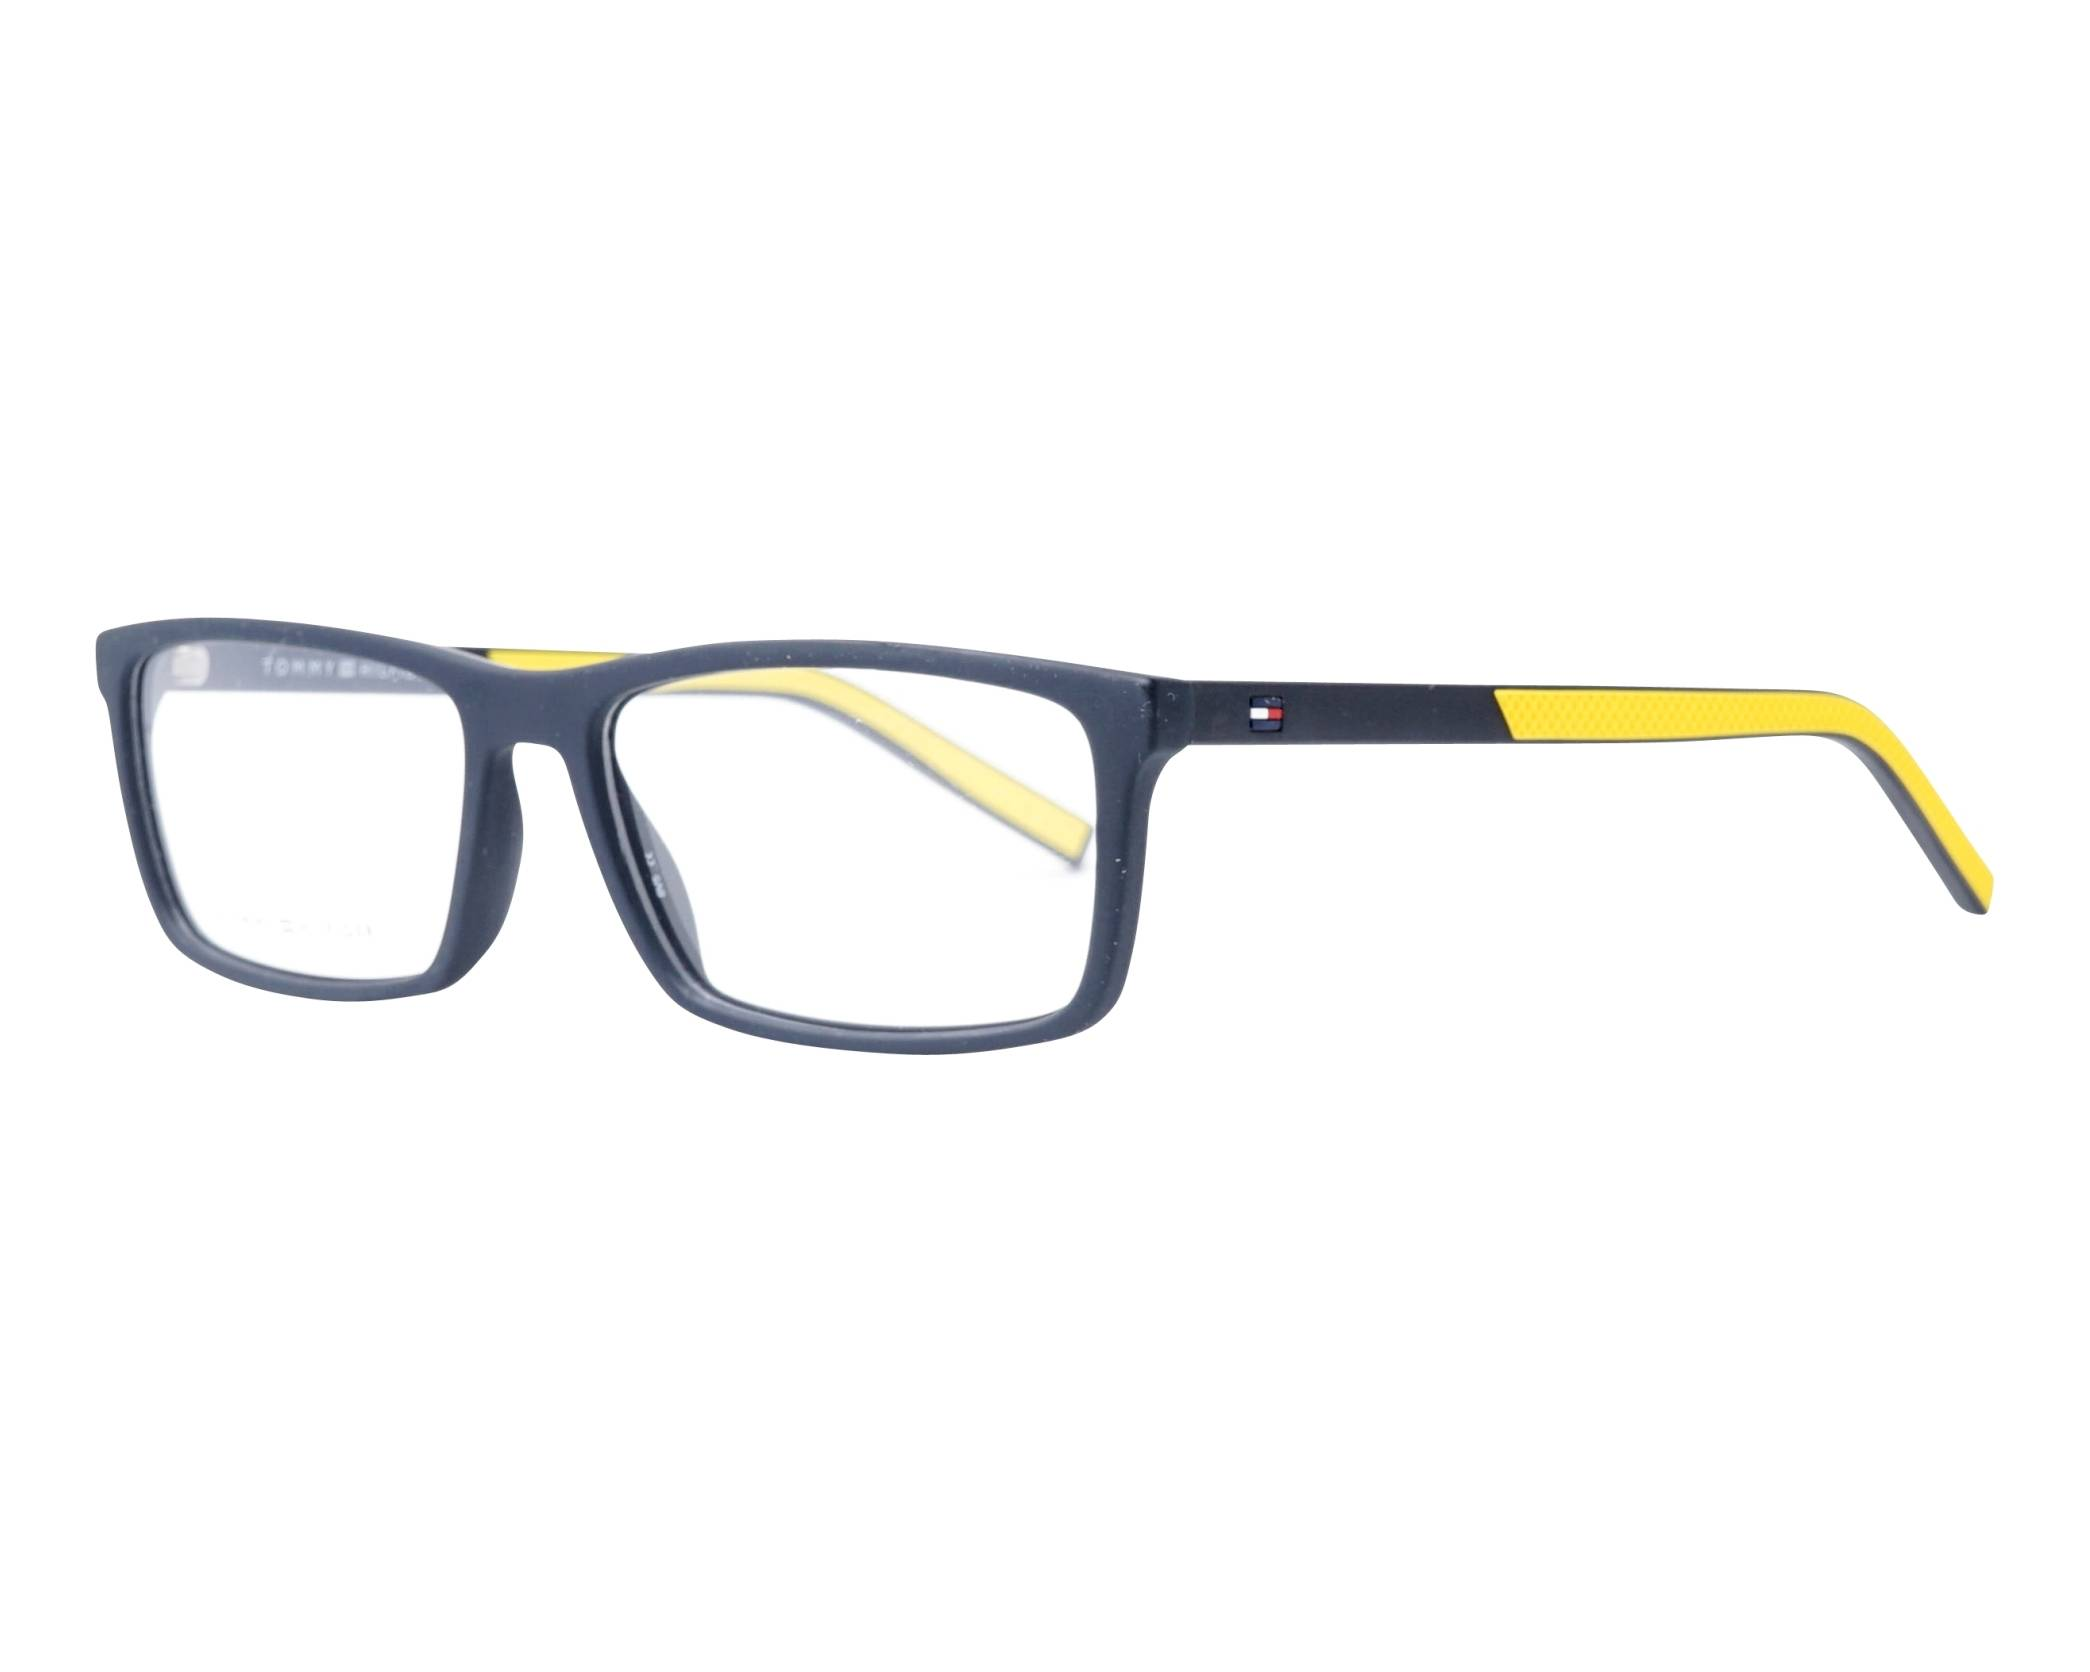 b86ce637e32 eyeglasses Tommy Hilfiger TH-1591 003 55-16 Black Yellow profile view